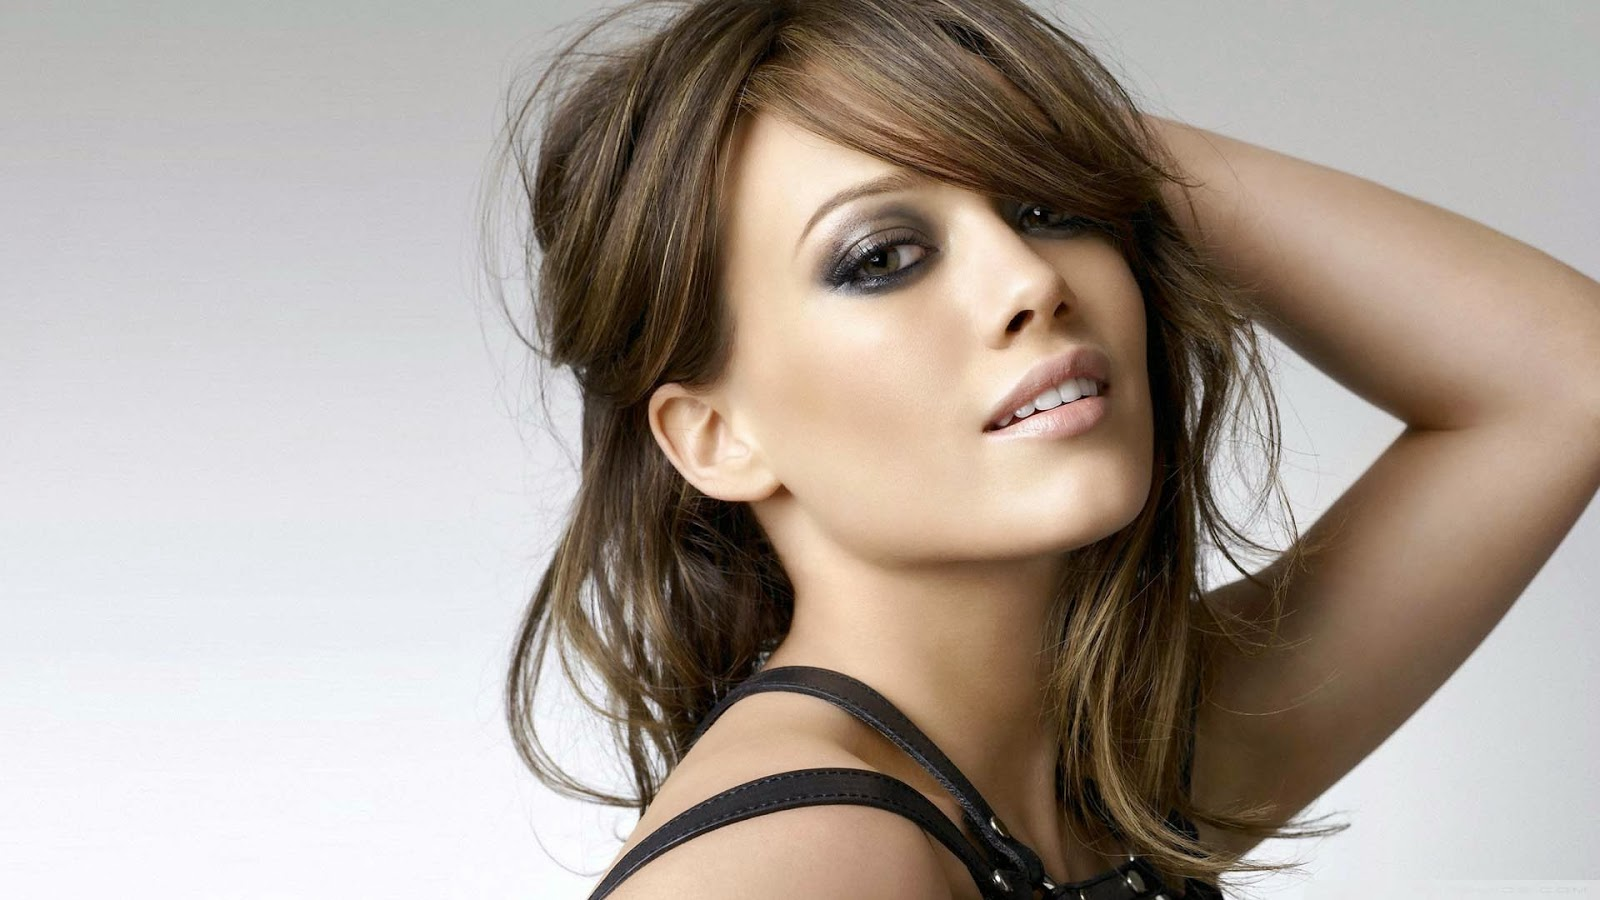 Hilary duff hot sexy wallpapers